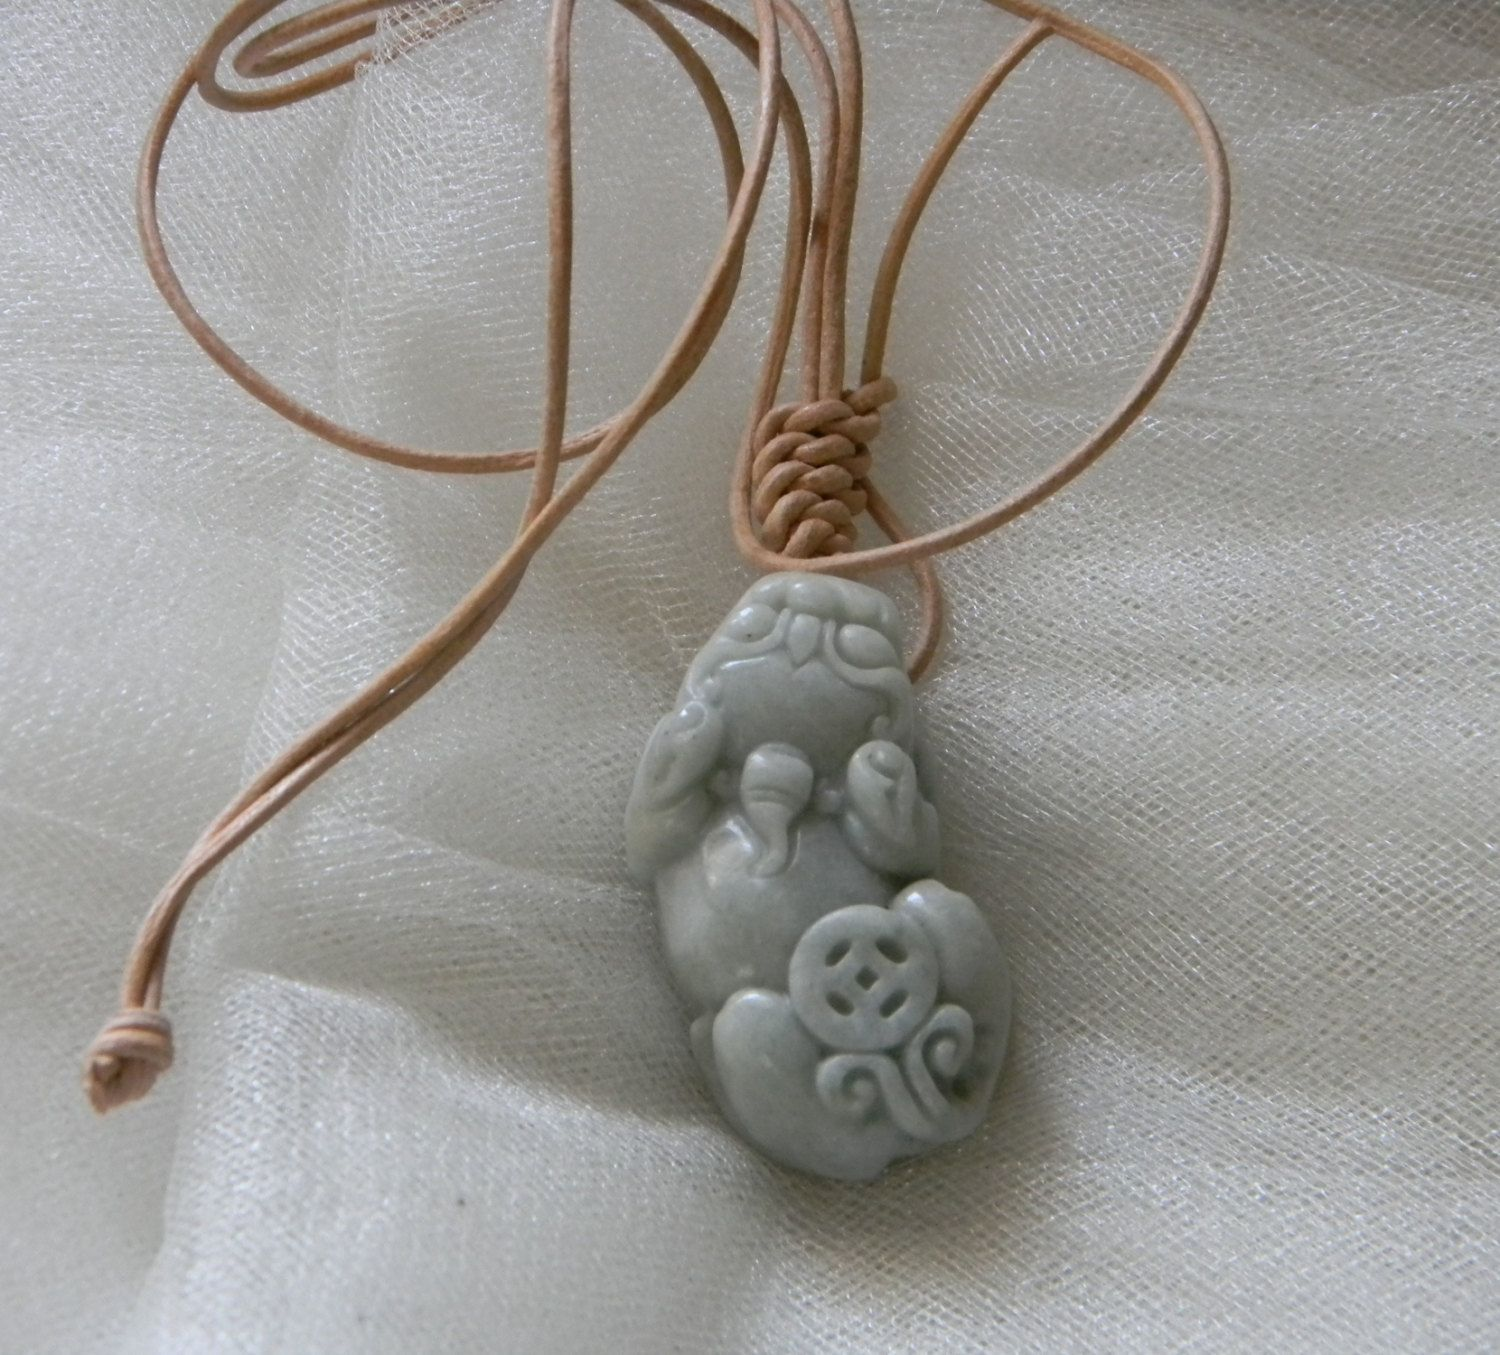 Jade fu dog pendant w leather cord necklace guardian lion jade fu dog pendant w leather cord necklace guardian lion protection talisman shishi aloadofball Image collections